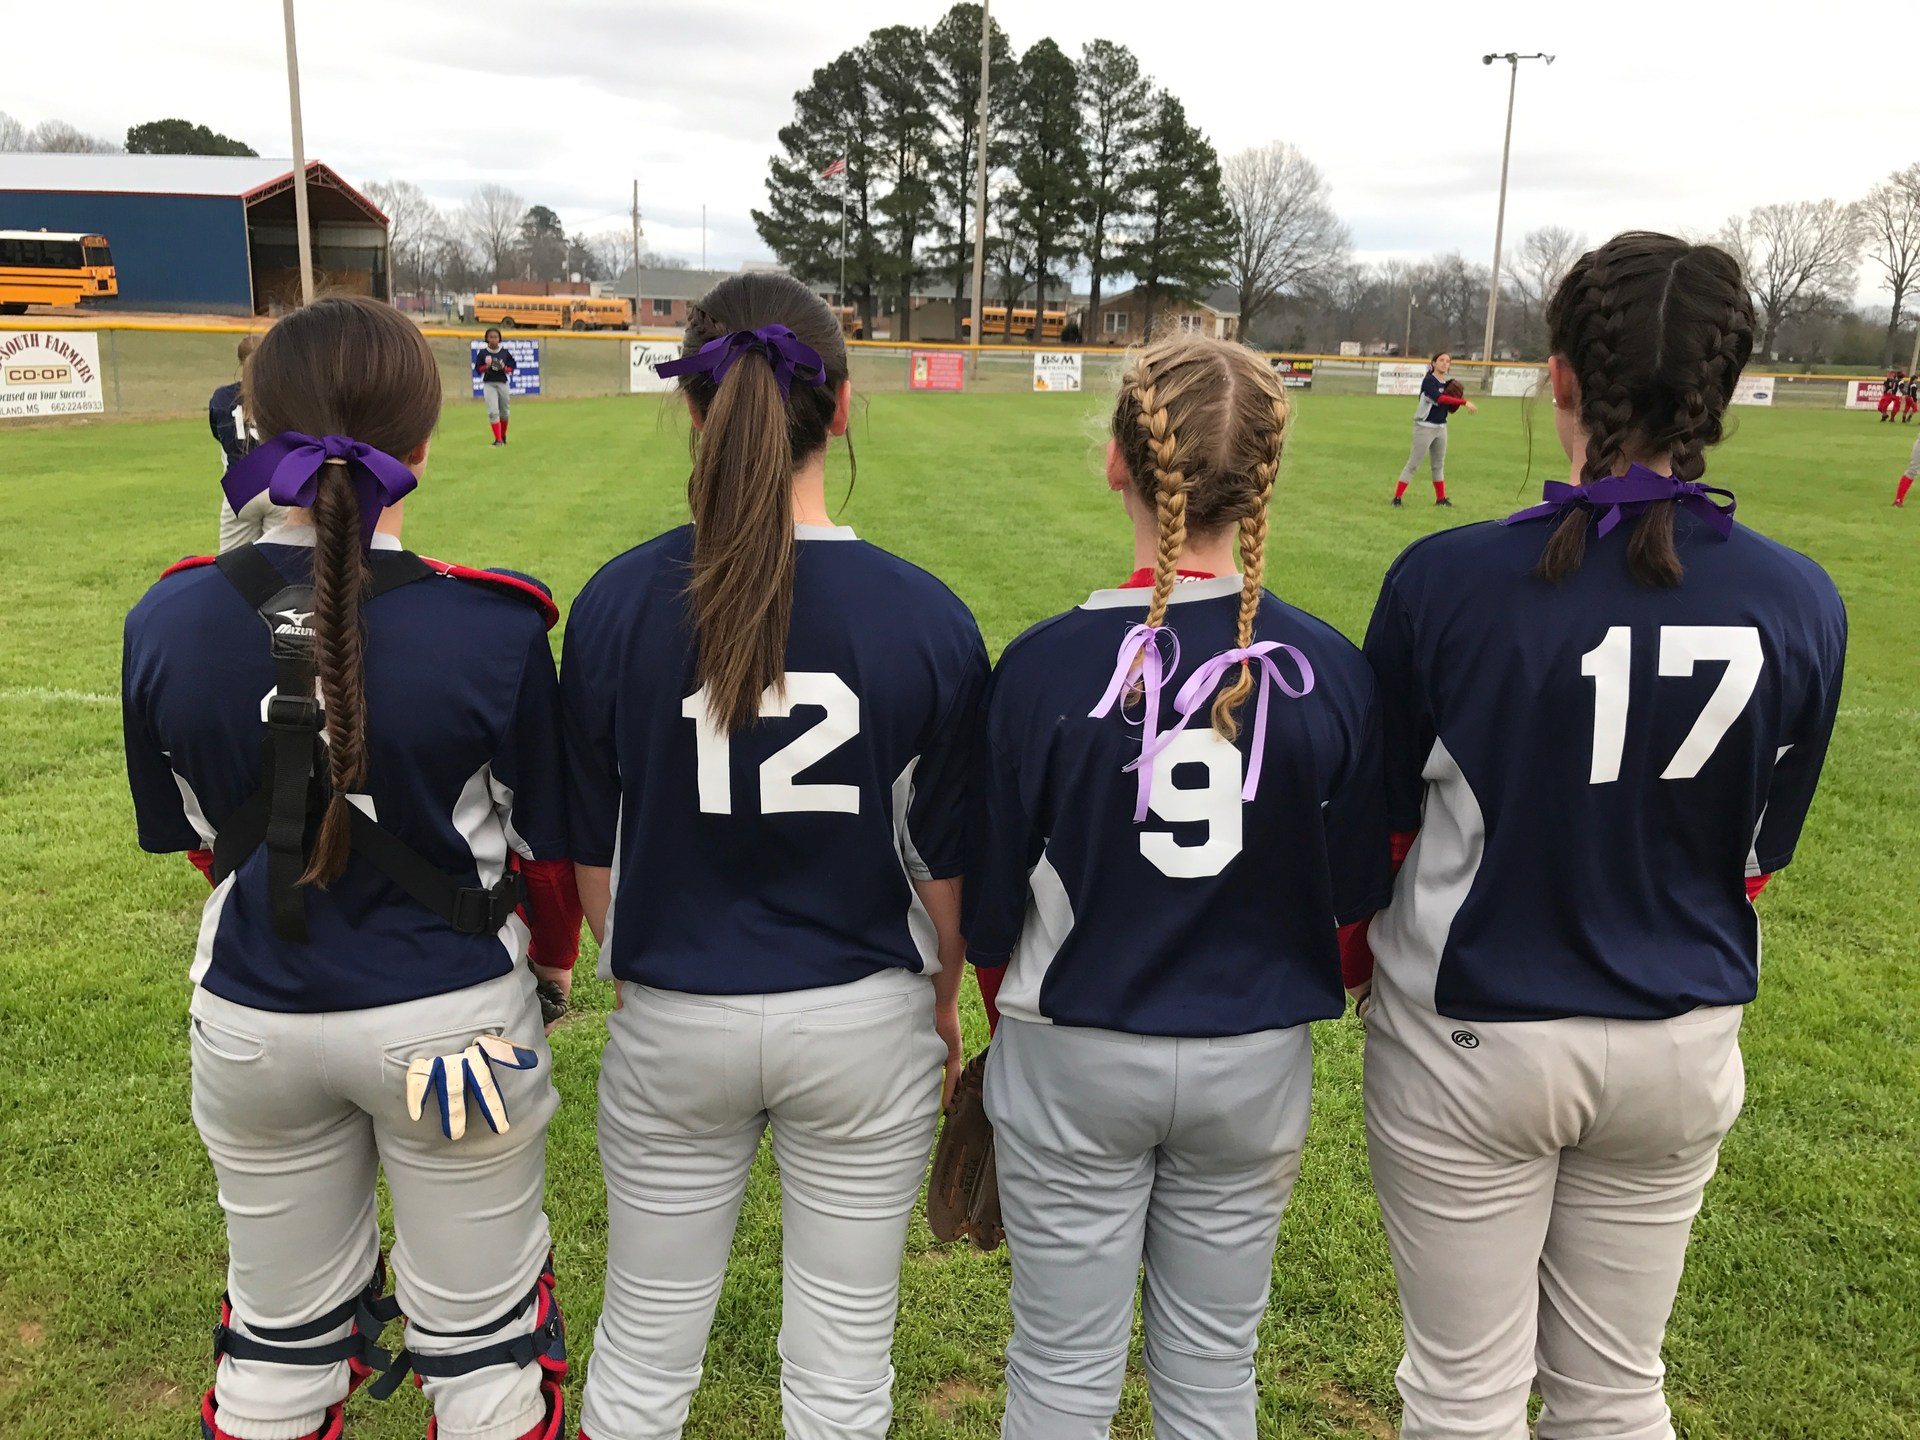 4 softball girls